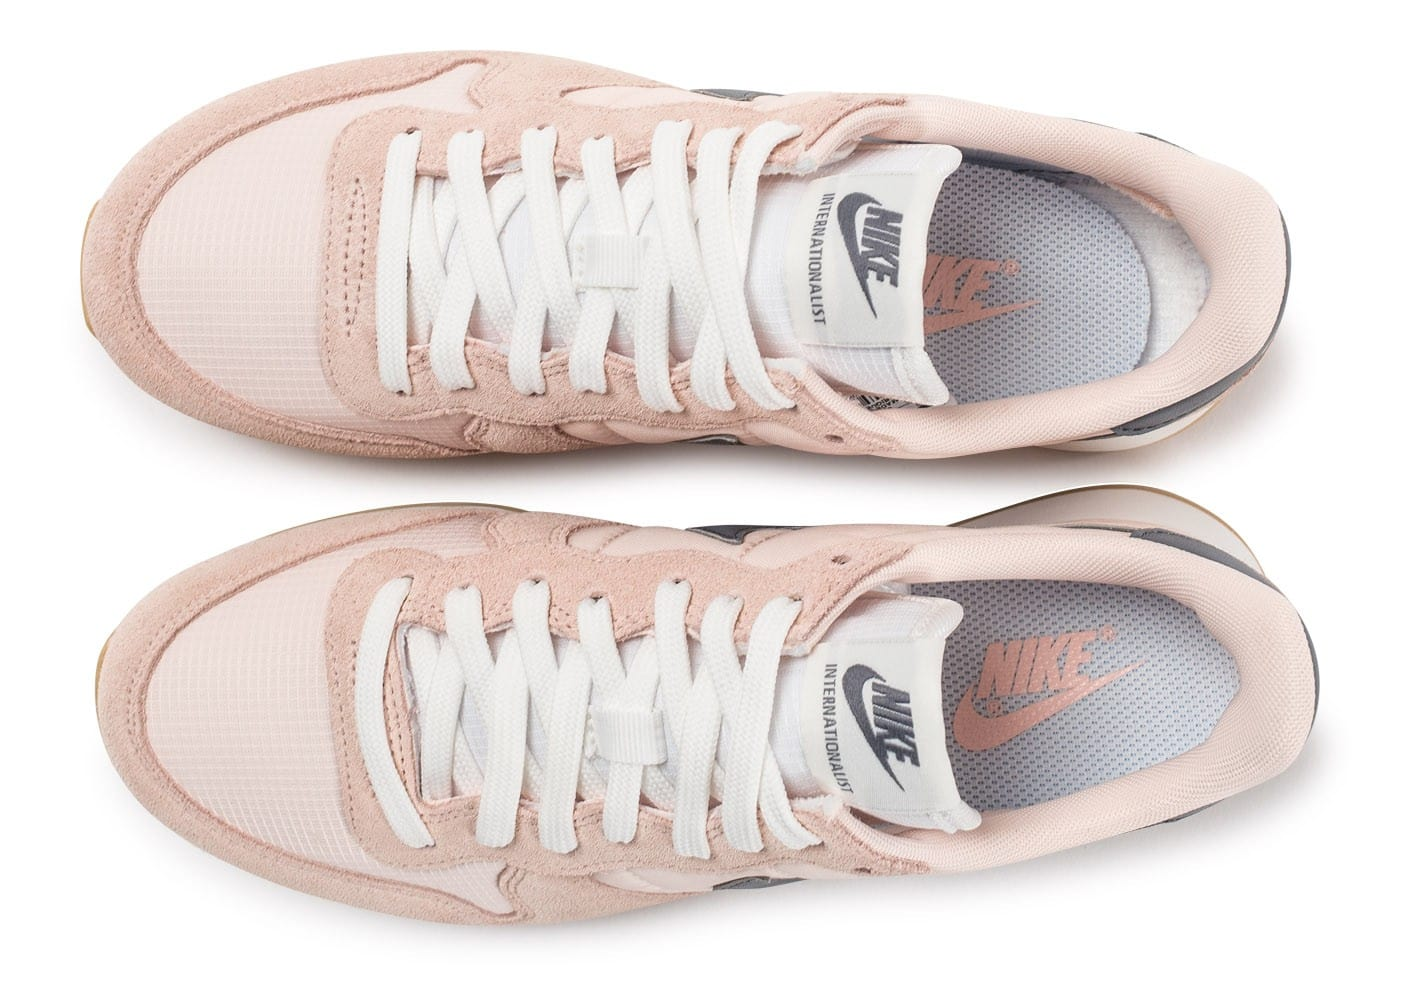 revendeur b560b 1f030 Nike Internationalist W rose pâle - Chaussures Baskets femme ...